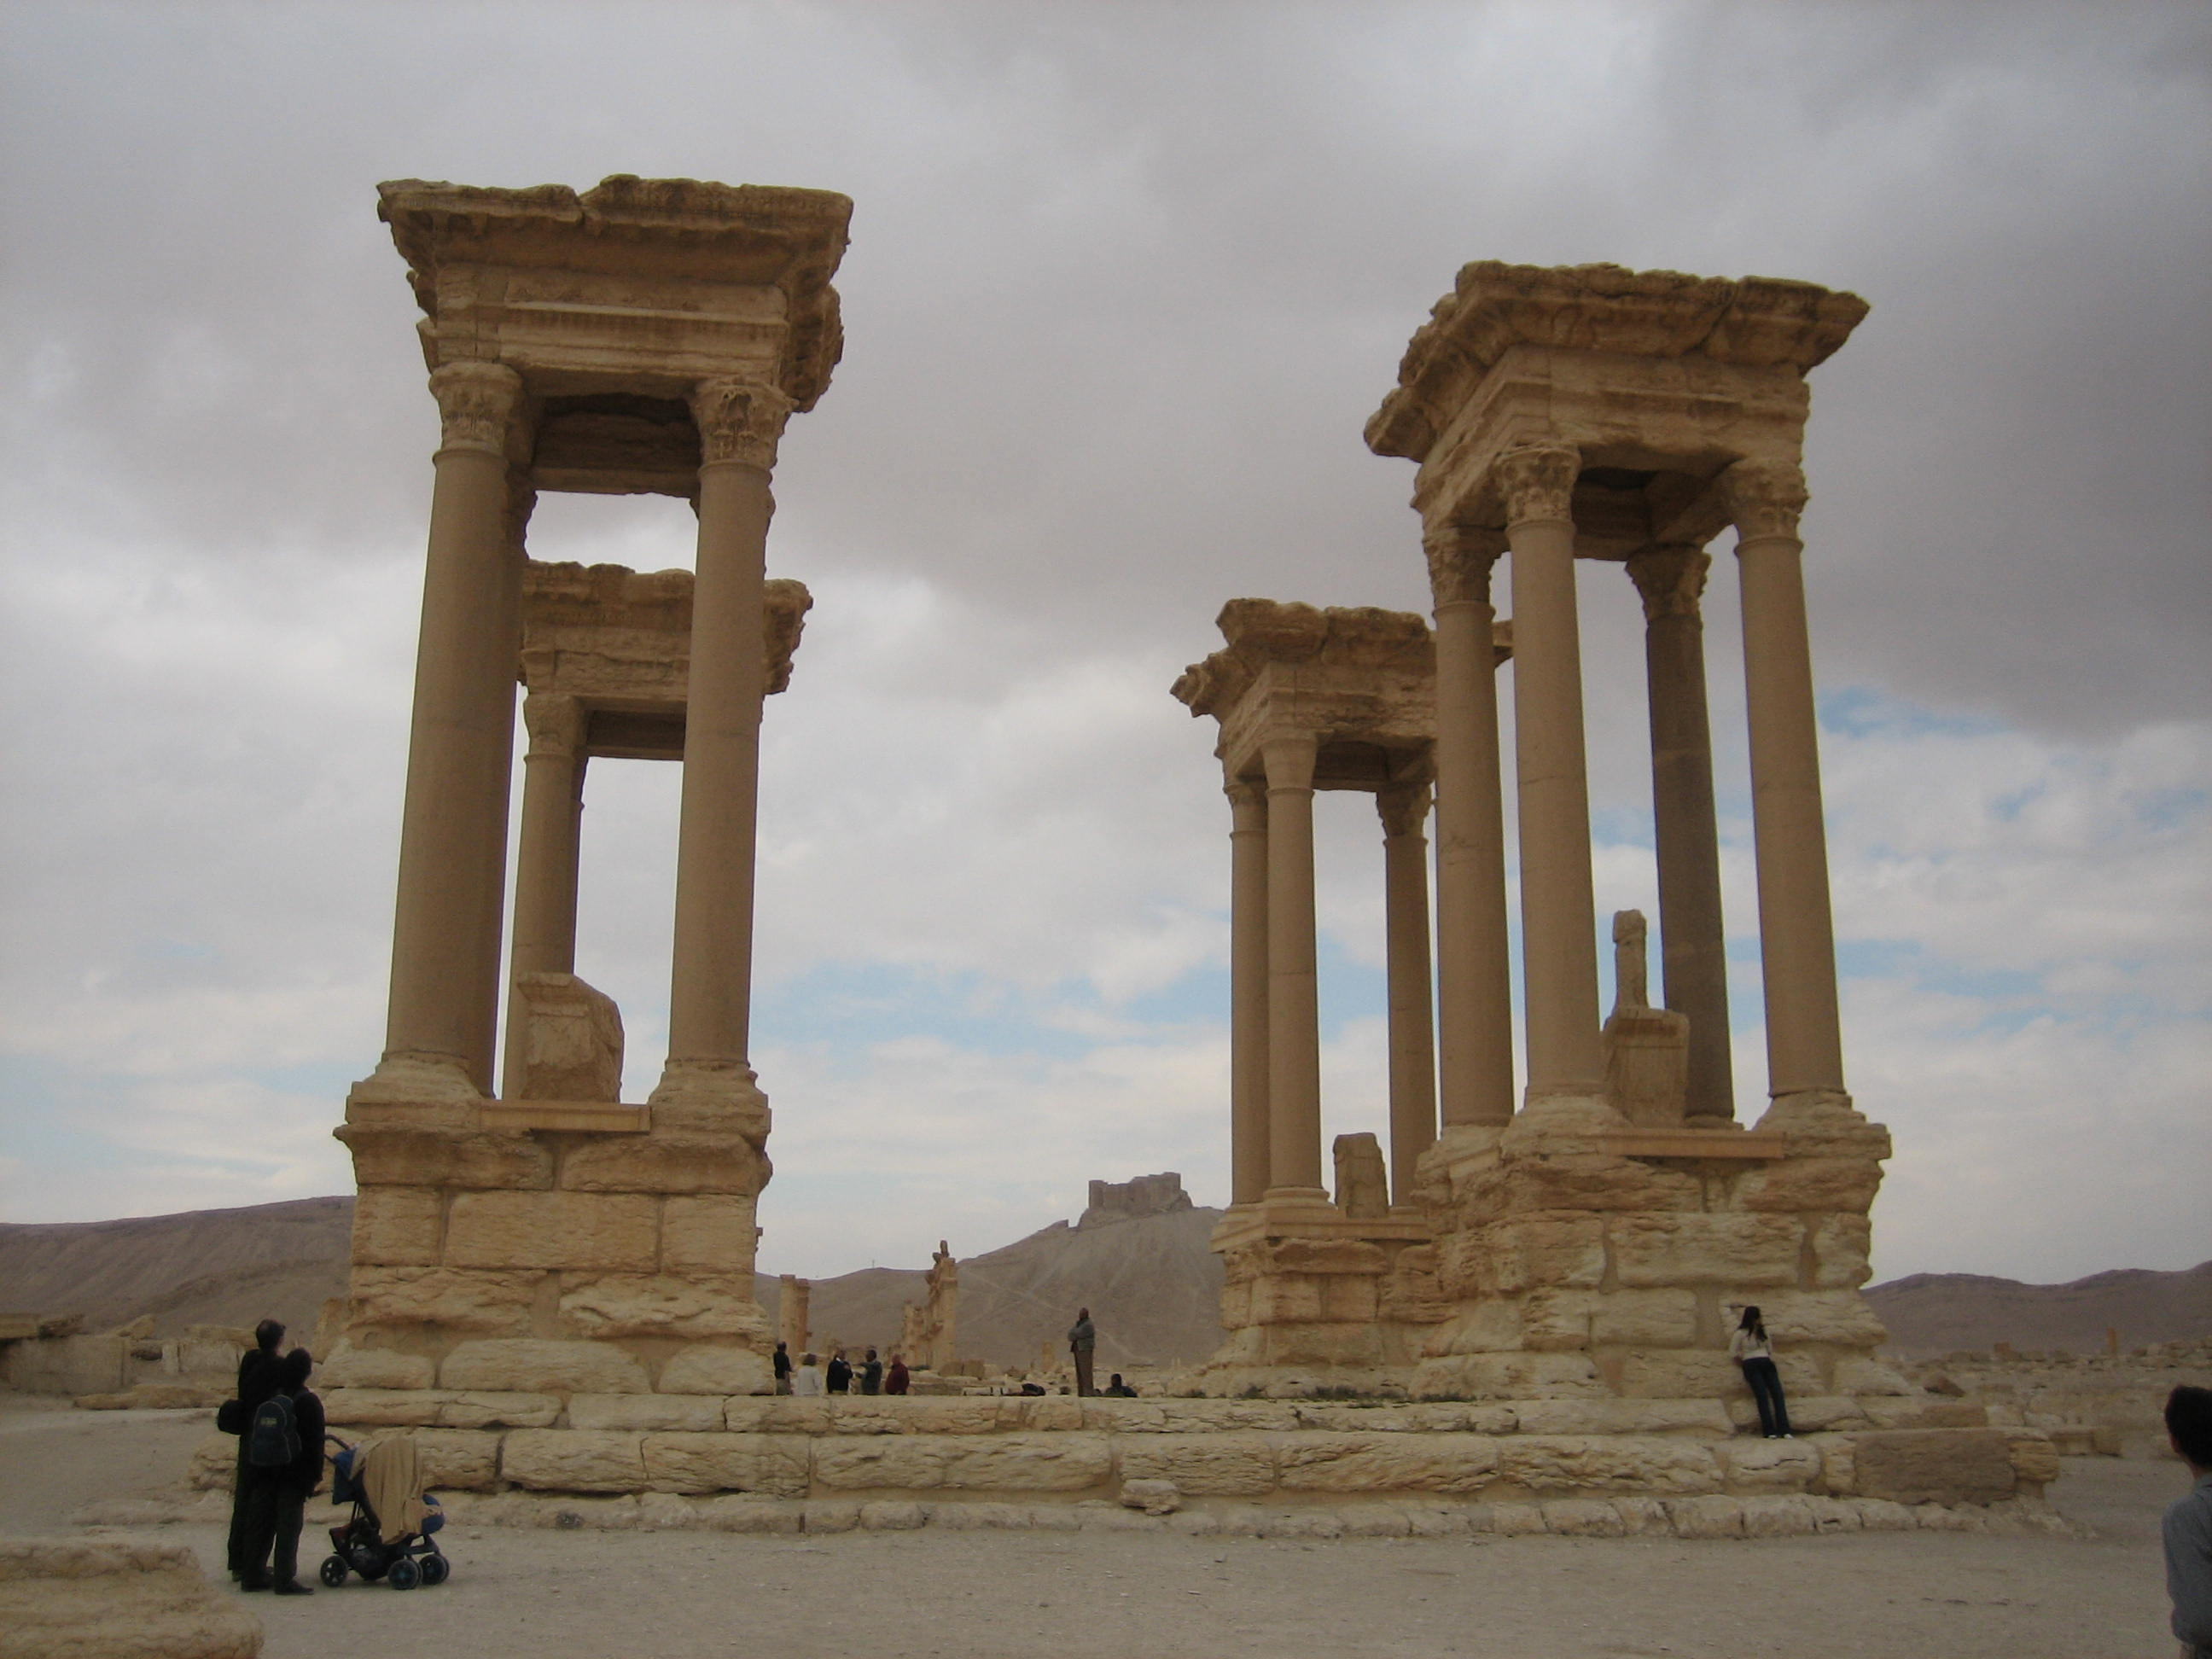 Figure 3: Palmyra, tetrapylon (photo by Tate Paulette, 2005)